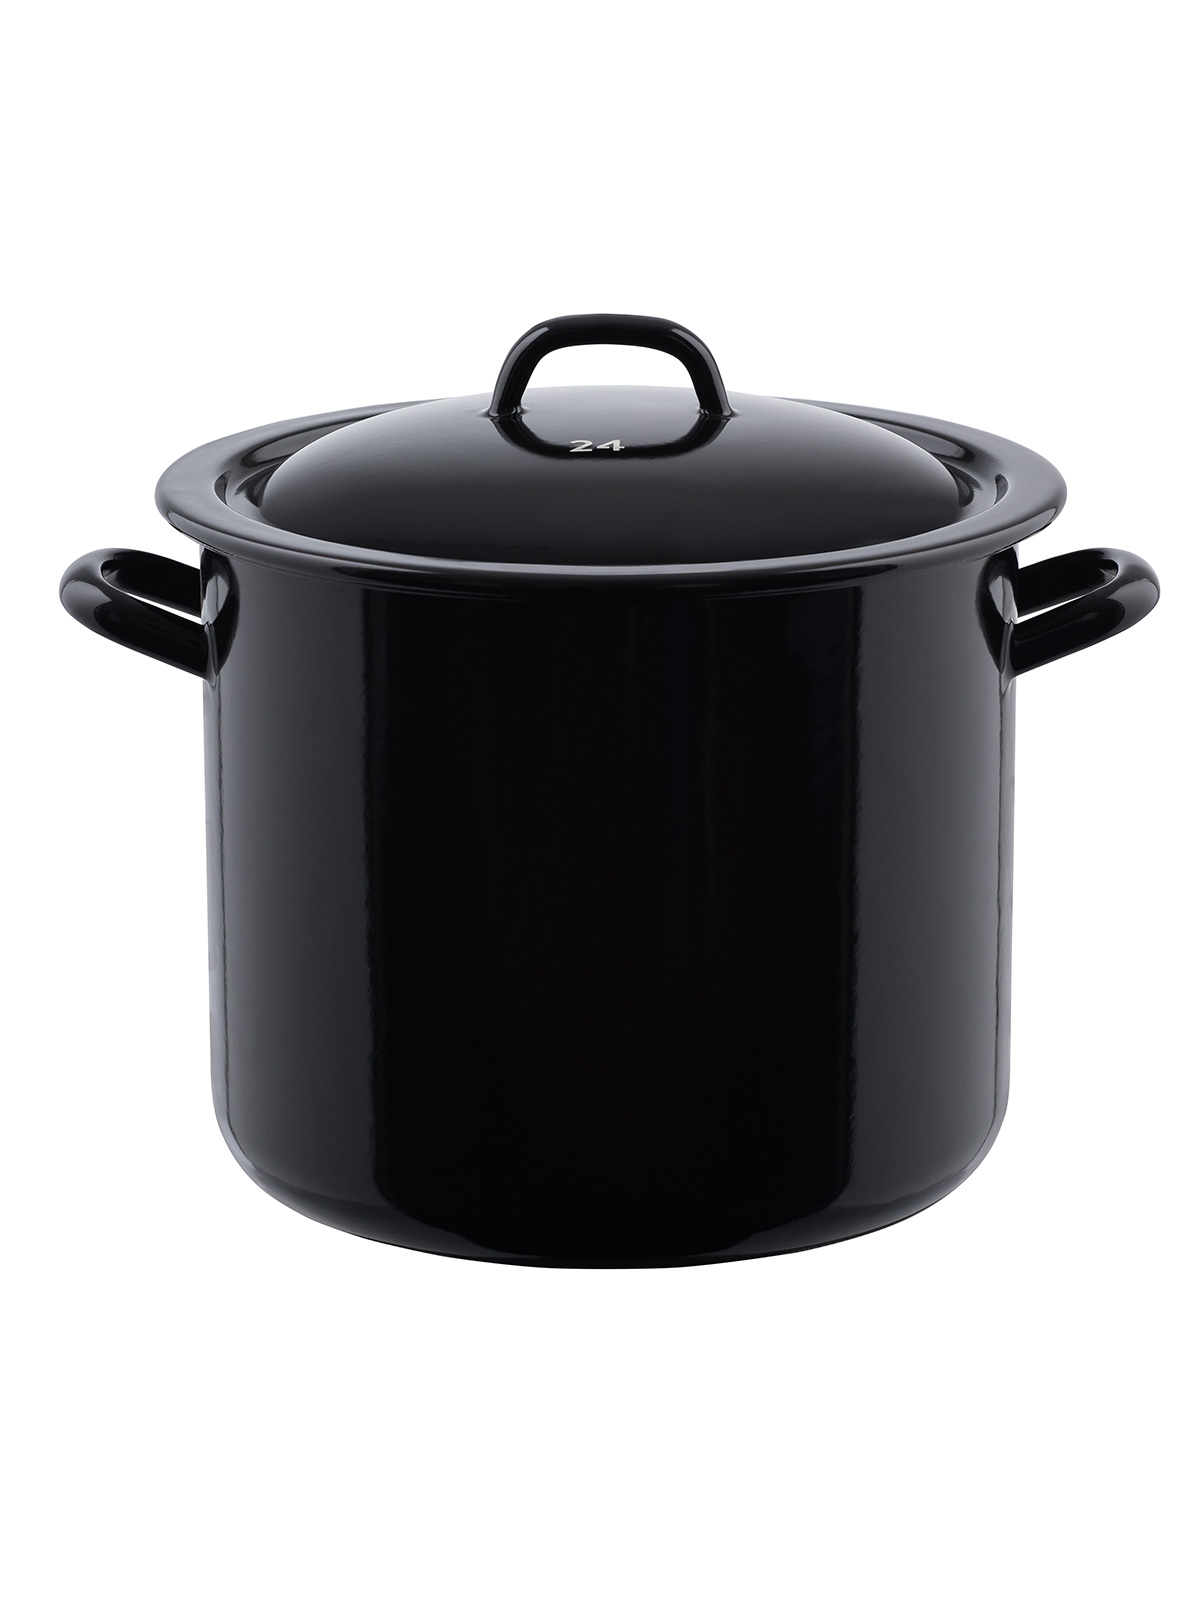 Classic high casserol with cover, black/white 4 liter